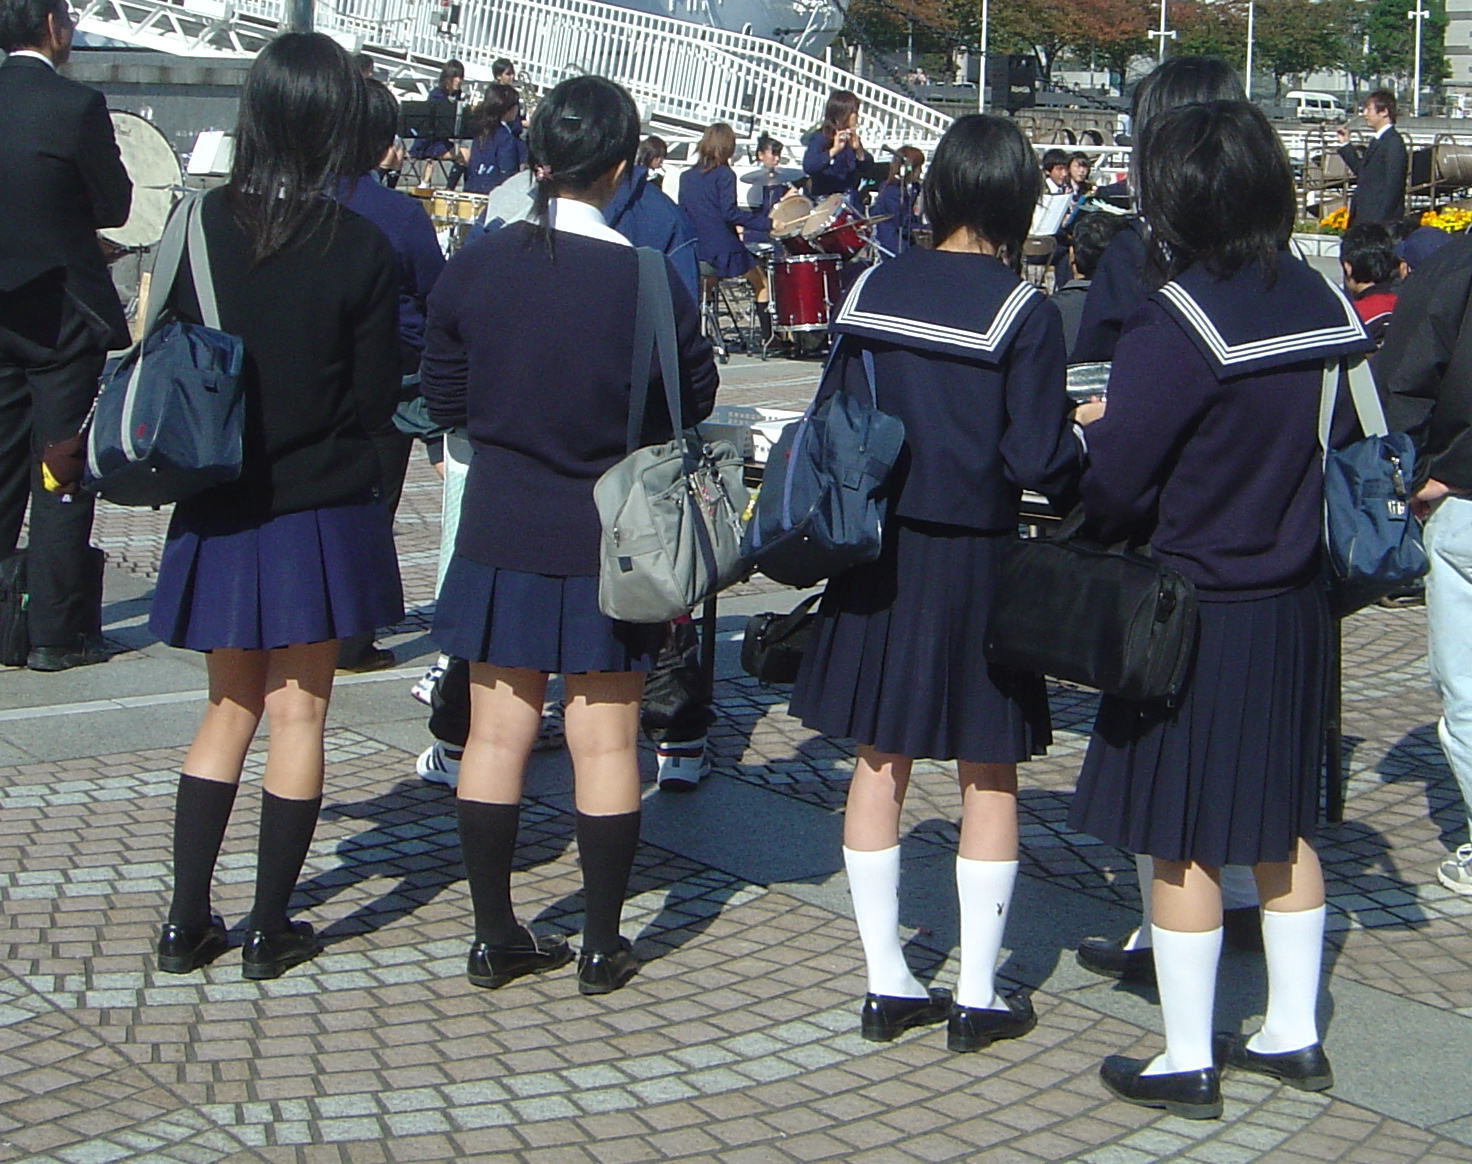 Japanese school uniform dsc06052.jpg